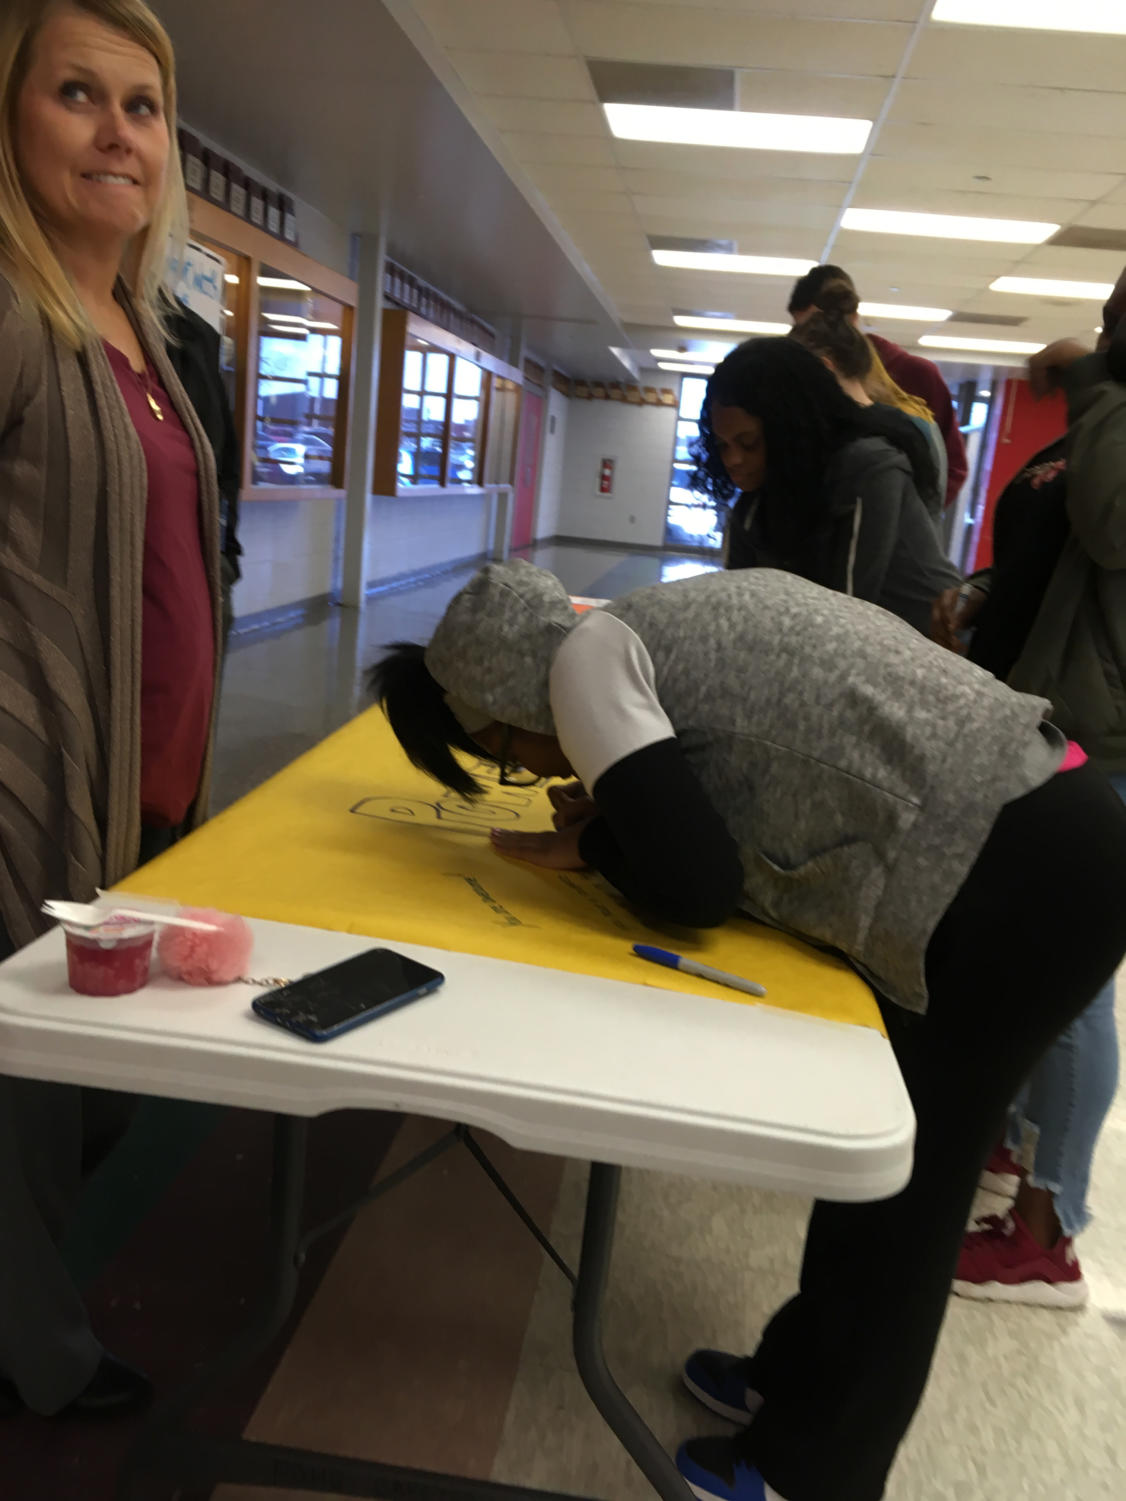 Junior Jemisha Nettles writes a message on poster paper during her lunch shift while Assistant Principal Tracie Gramko watches over the crowd. The poster paper will be hung around the building for students to view.